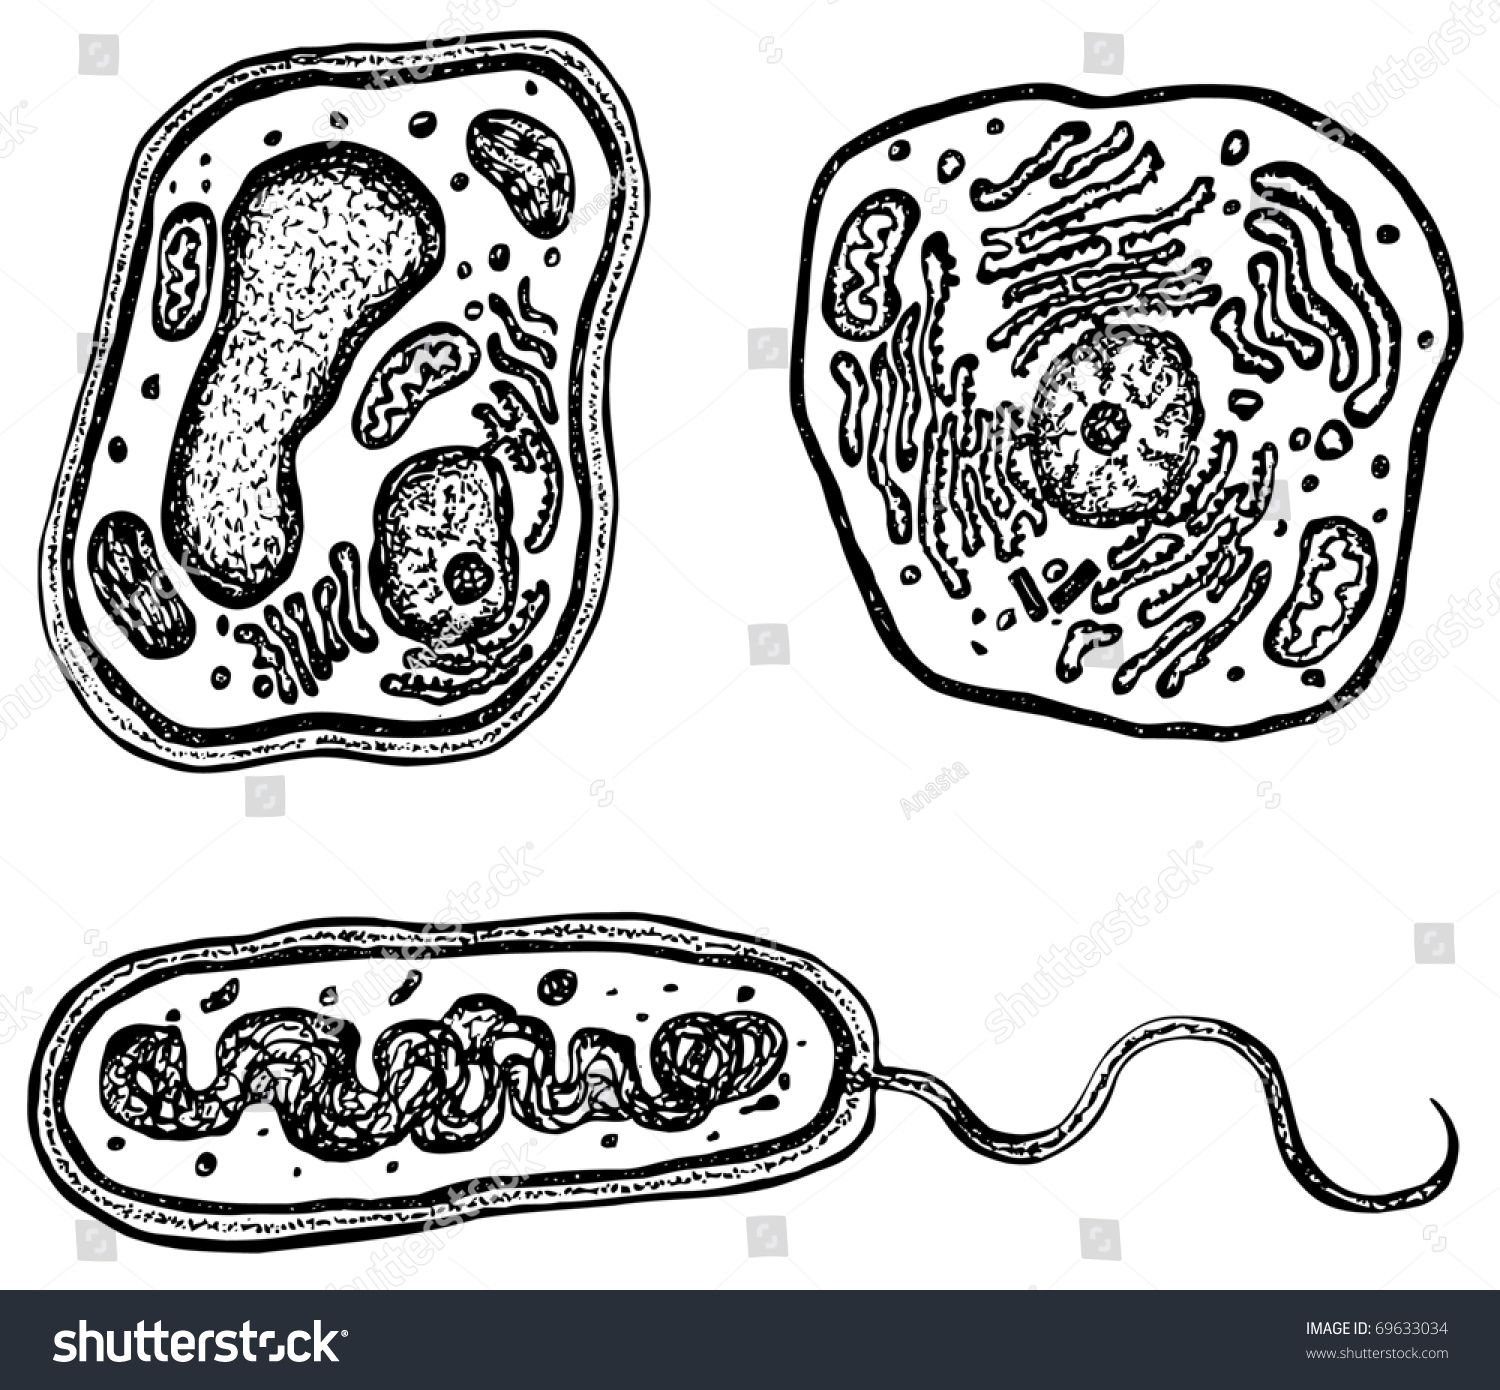 plant cell diagram black and white iphone 4 charger wire animal bacteria cells organelles each stock vector